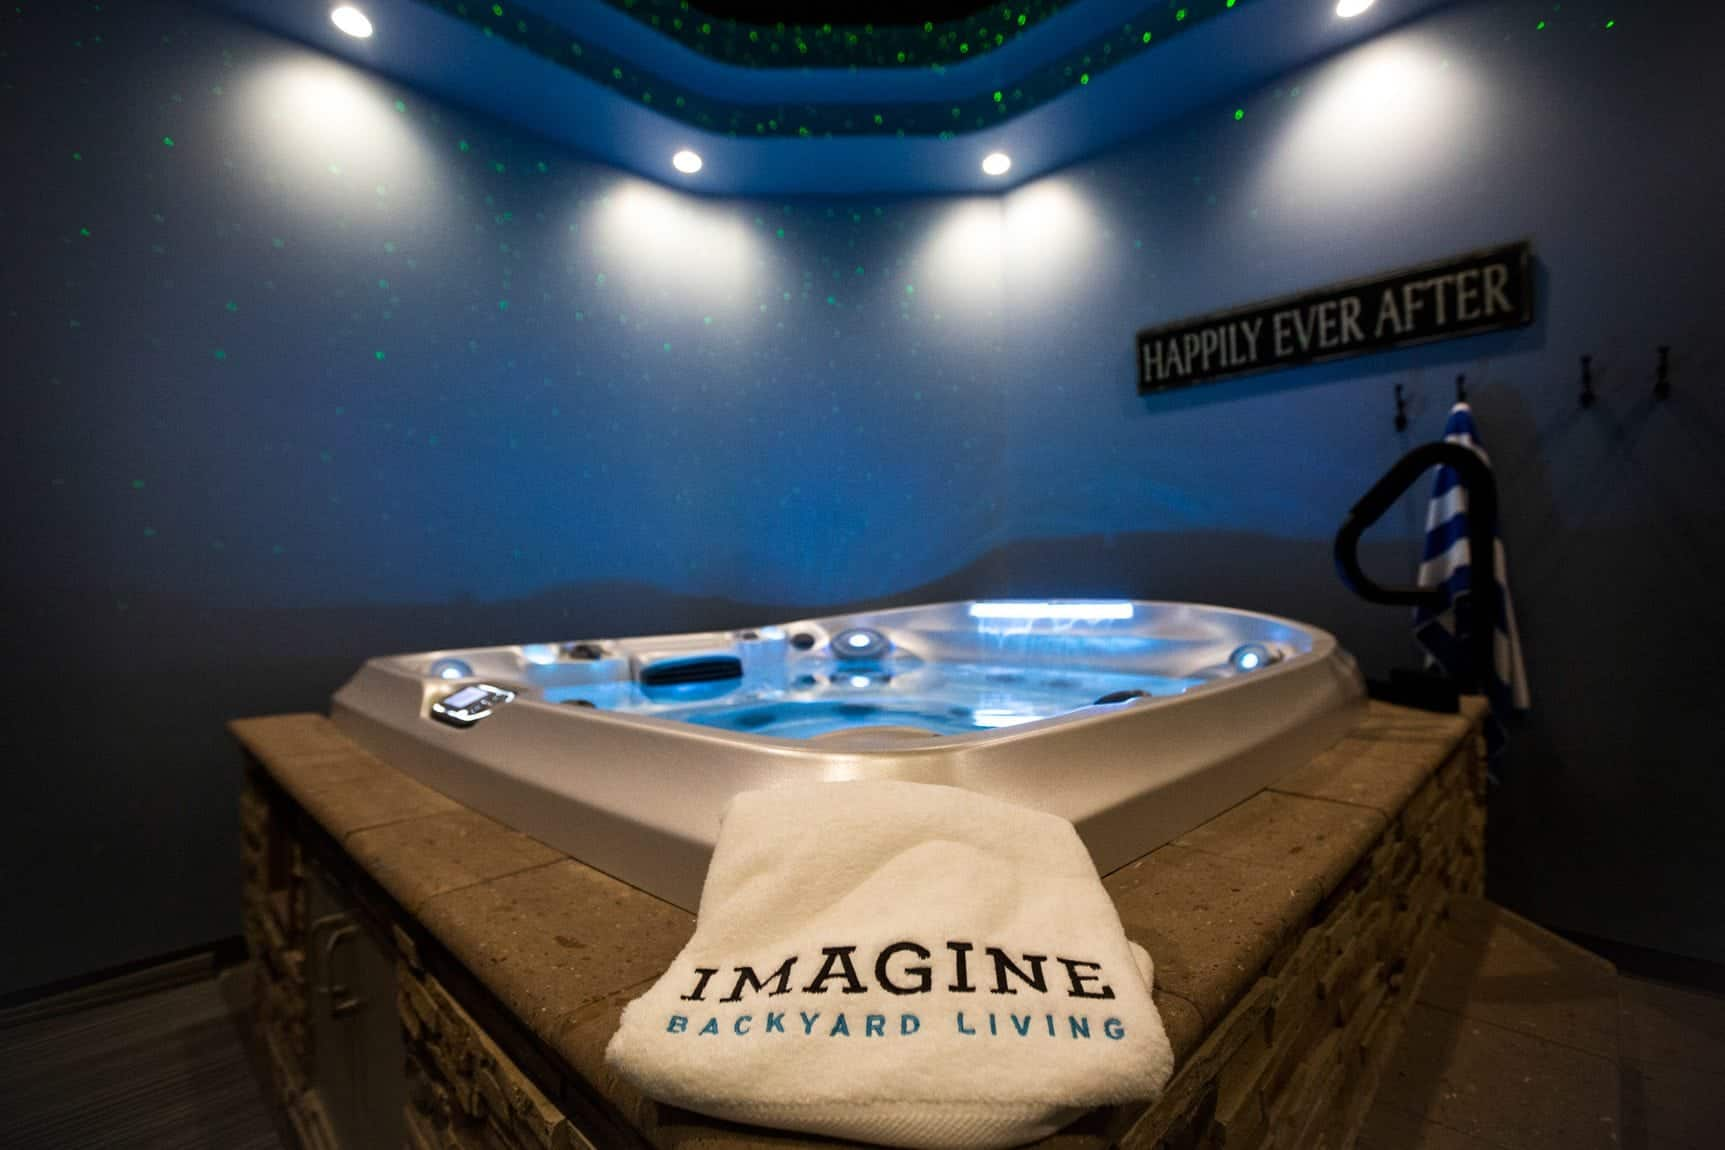 Medical Tax Deduction For Spa Or Hot Tub Imagine Backyard Living